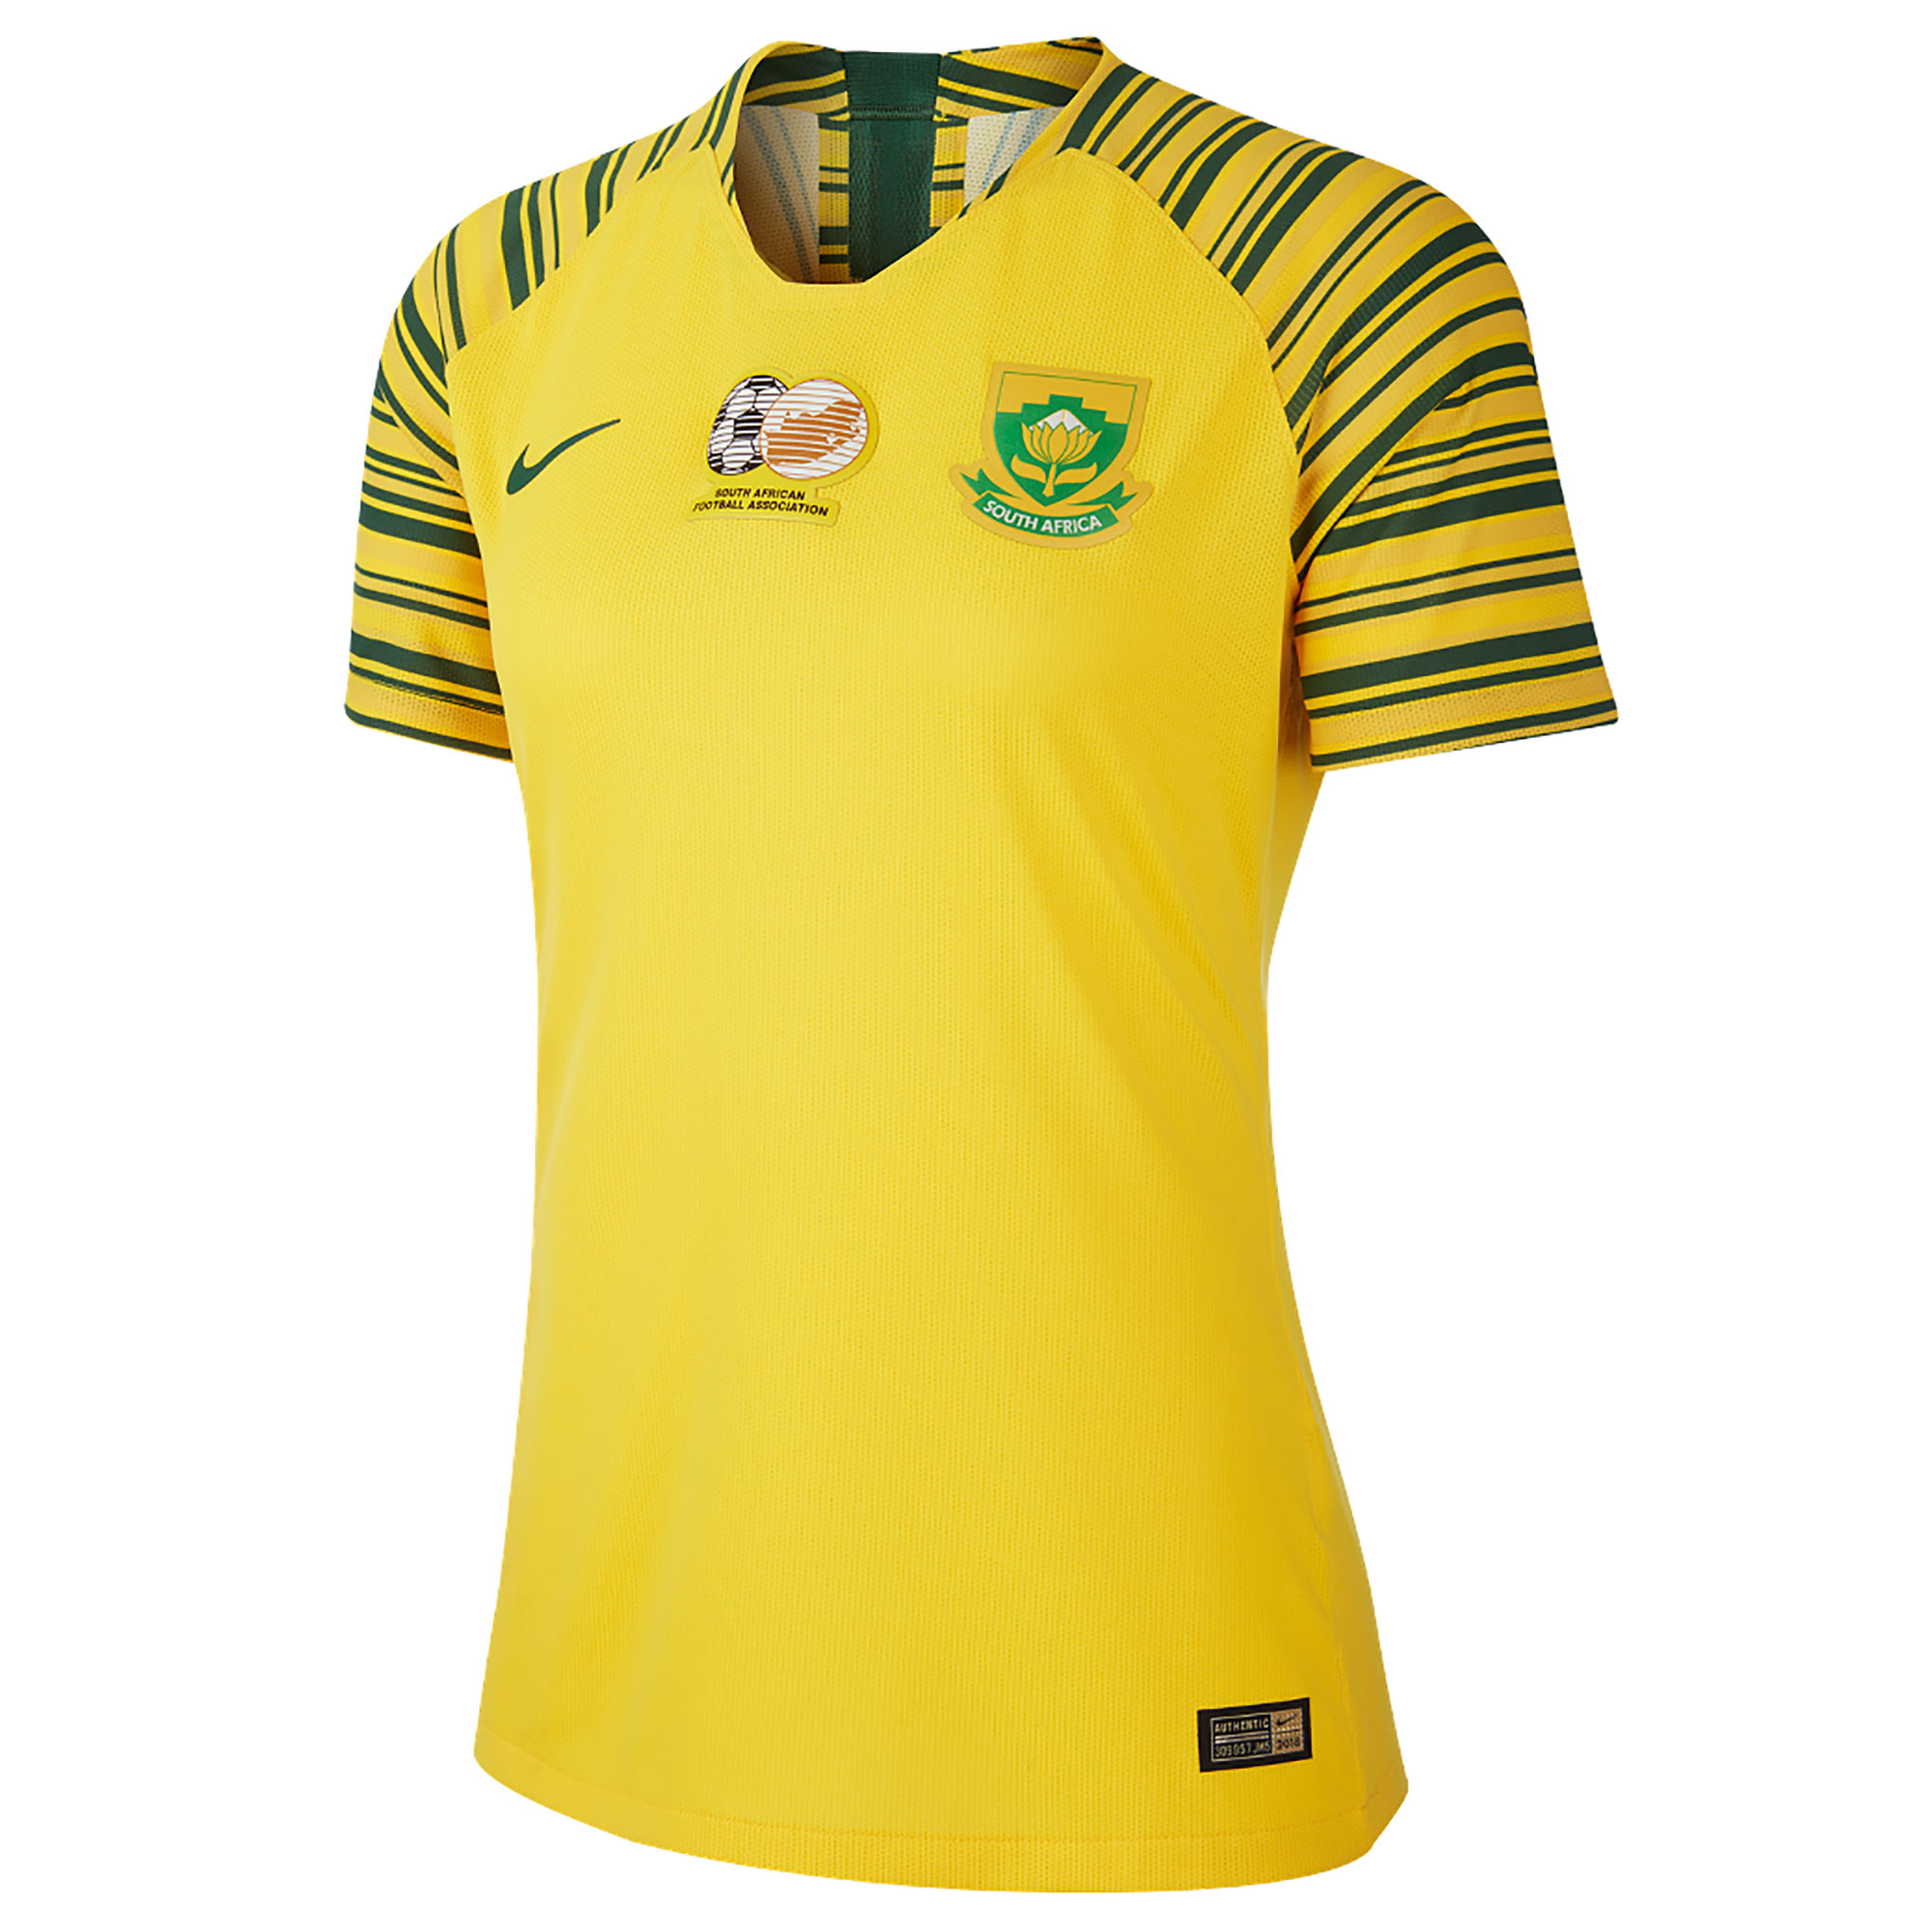 South Africa Home Stadium Shirt 2019-20 - Women's